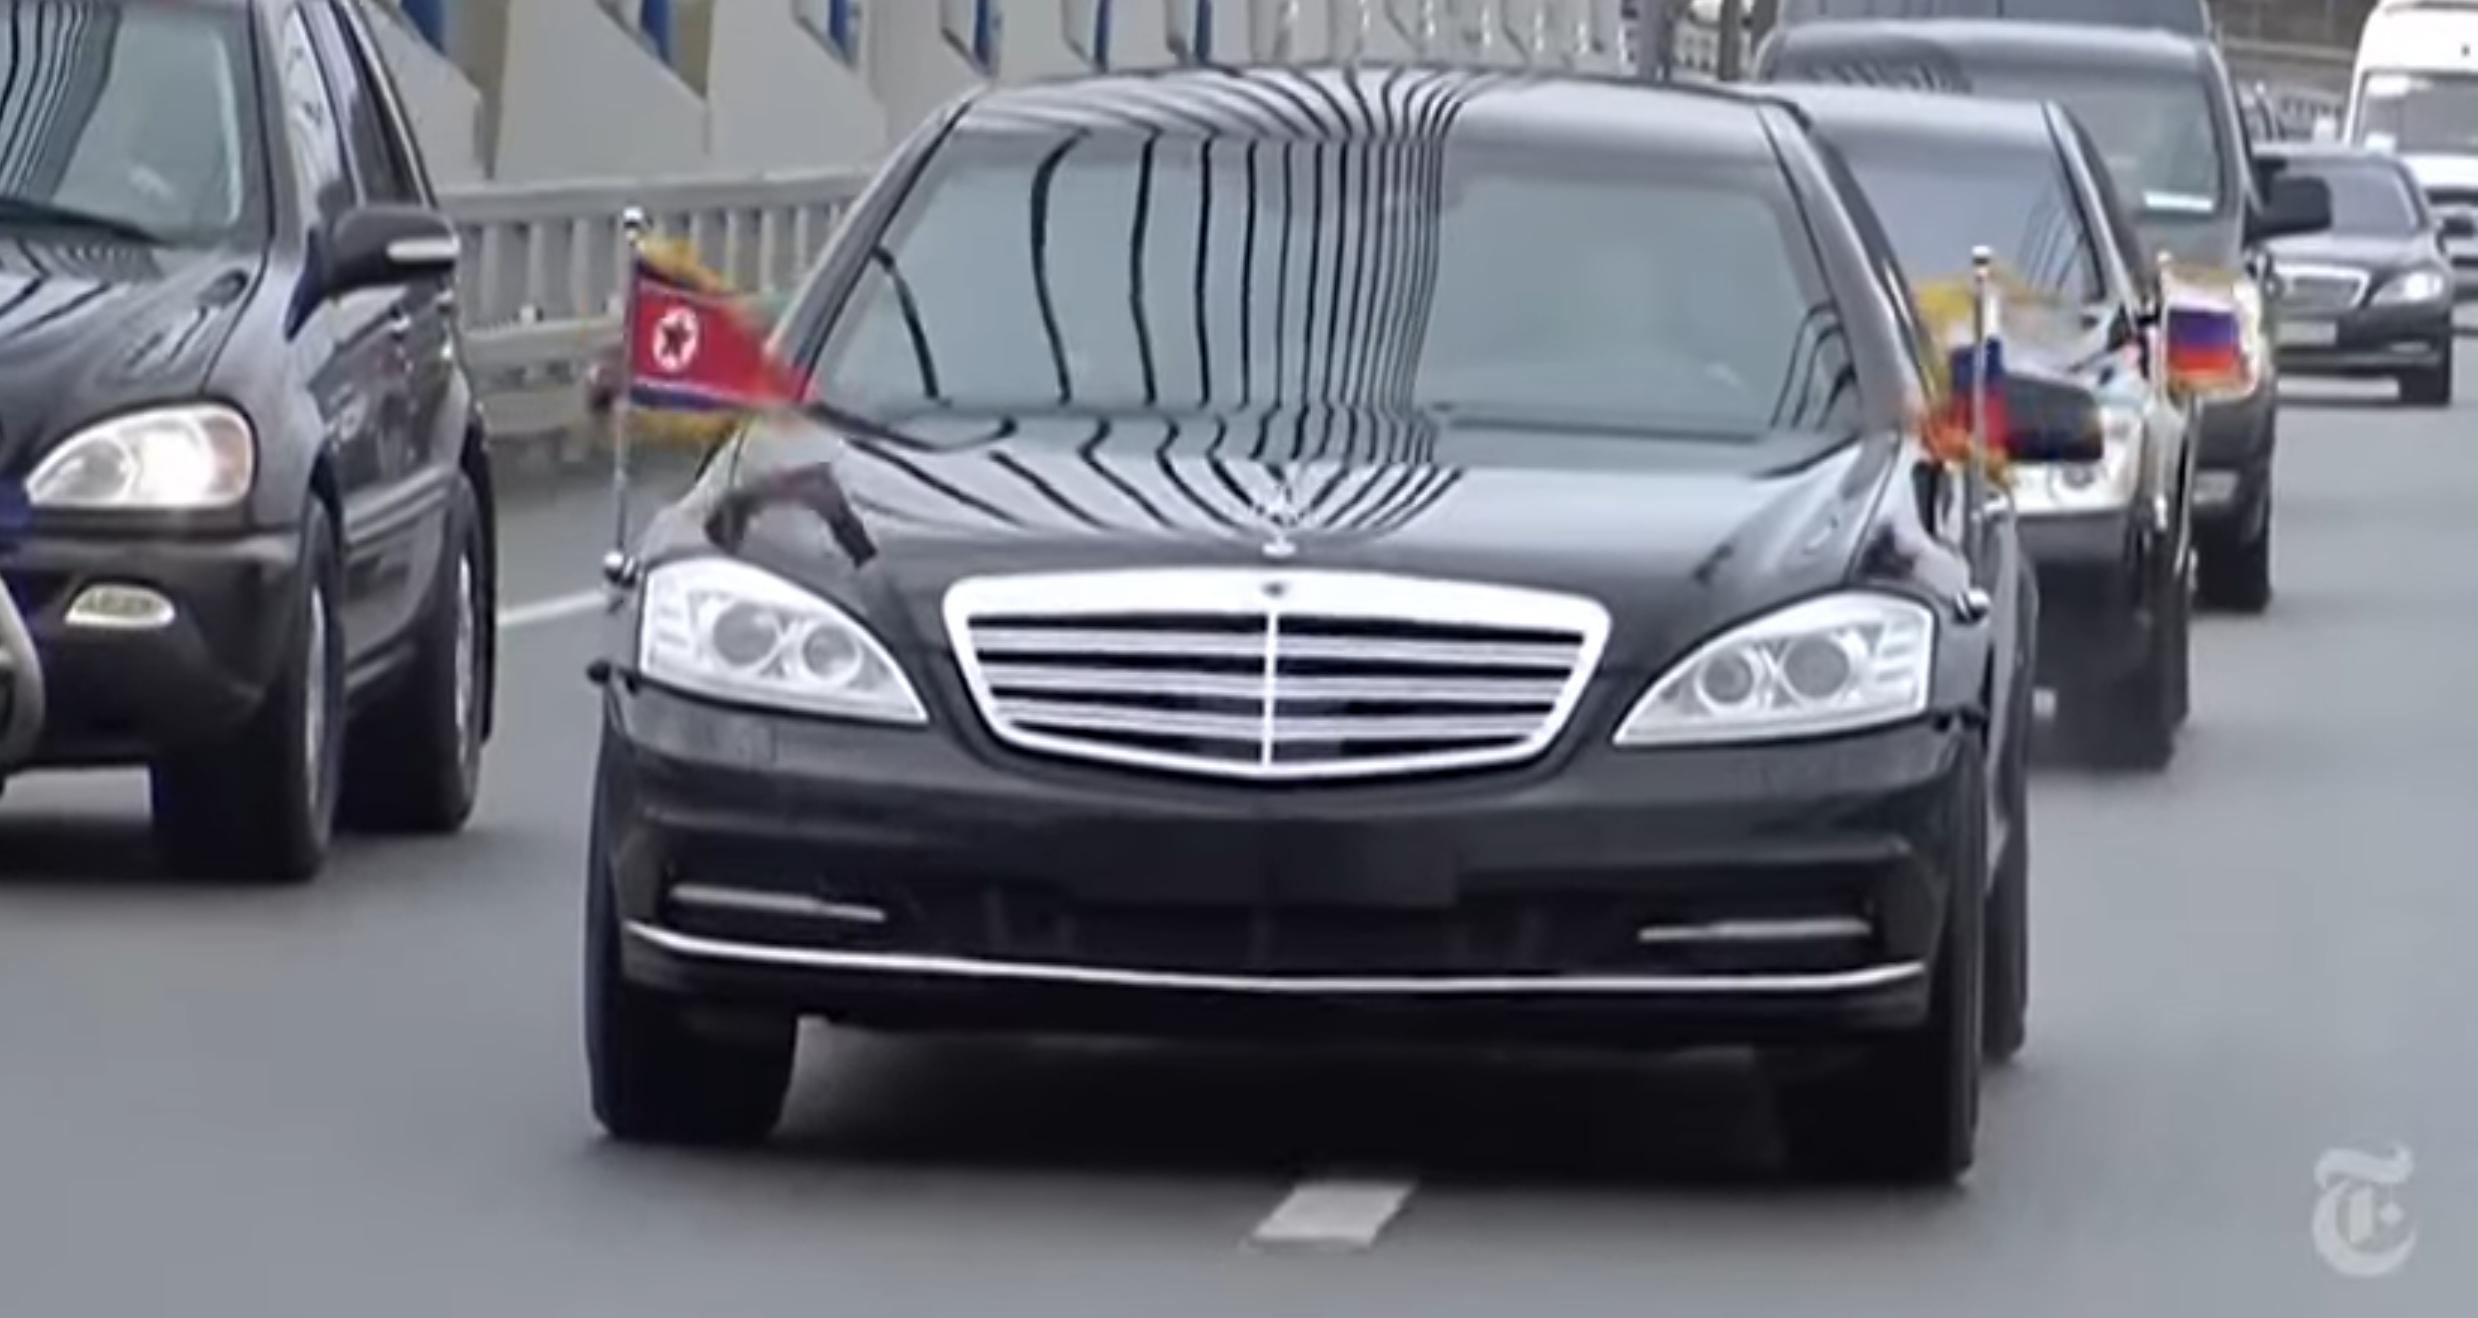 feature jalopnik kim-jong-un maybach mercedes mercedes-benz north-korea